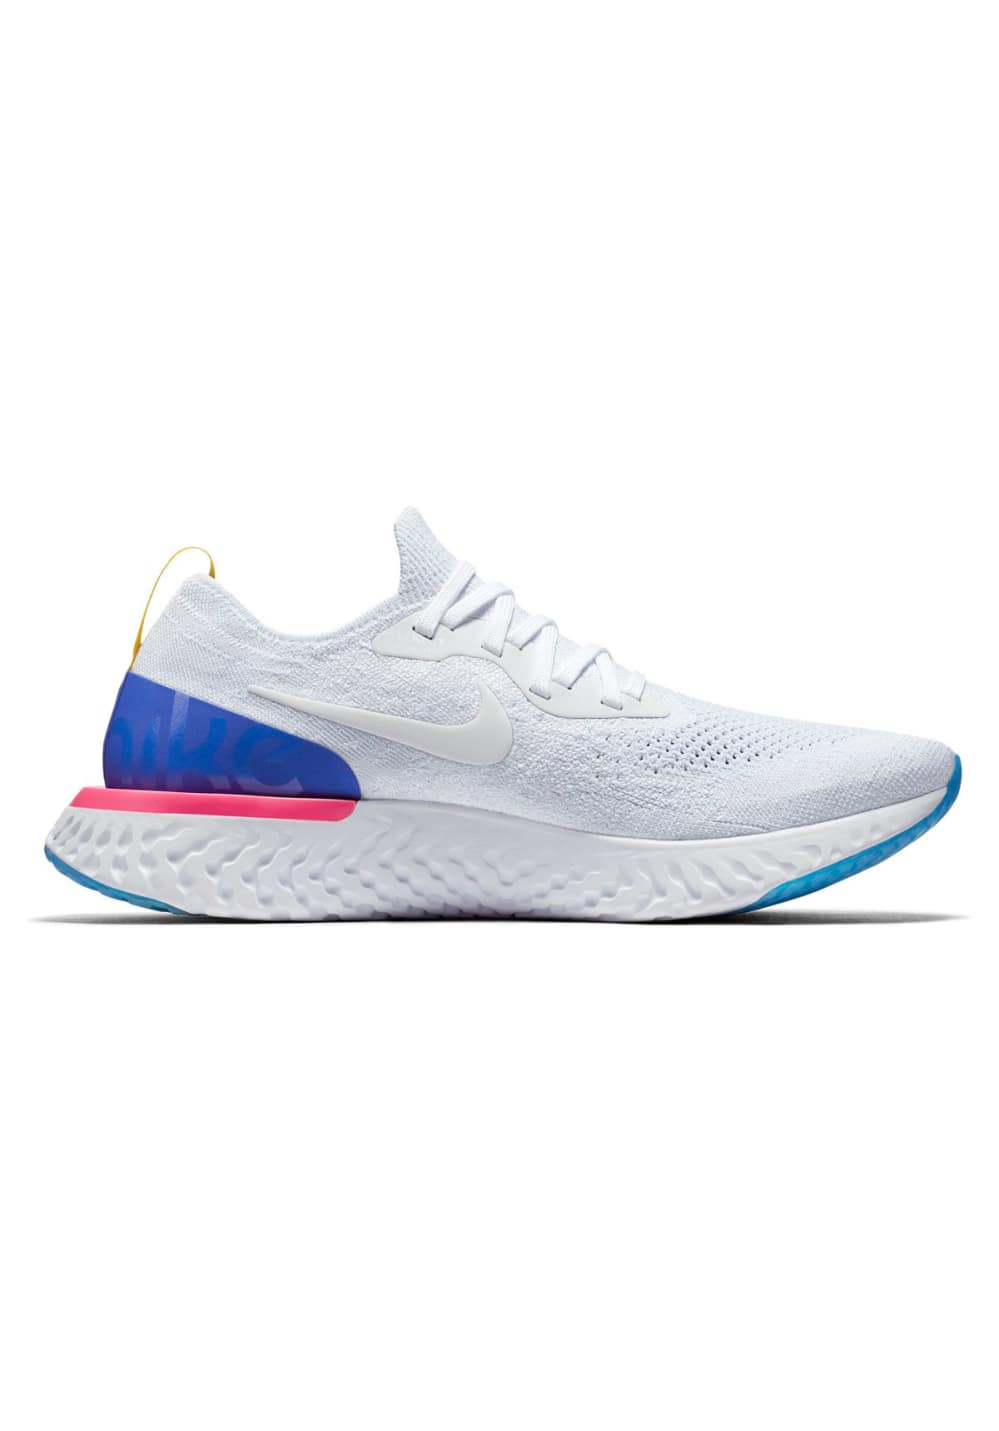 timeless design 3507a 598e7 Nike Epic React Flyknit - Running shoes for Men - White | 21RUN